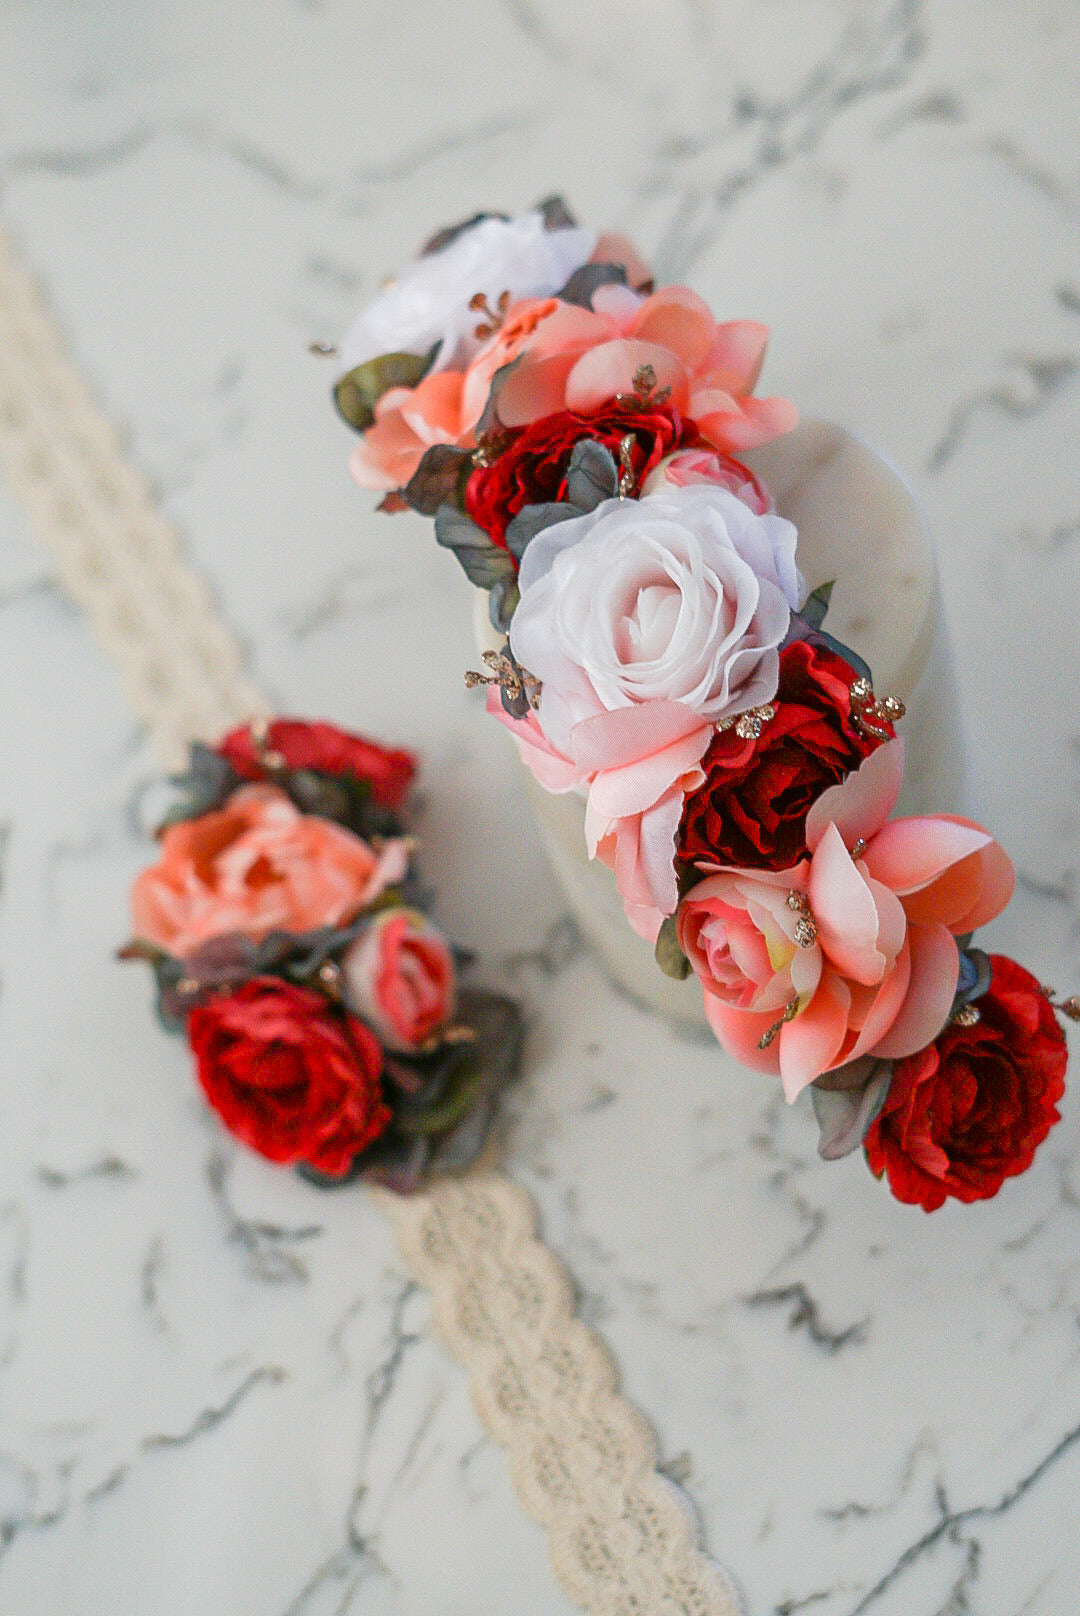 Diana - Matching Set (Small 4inch crown & floral comb)